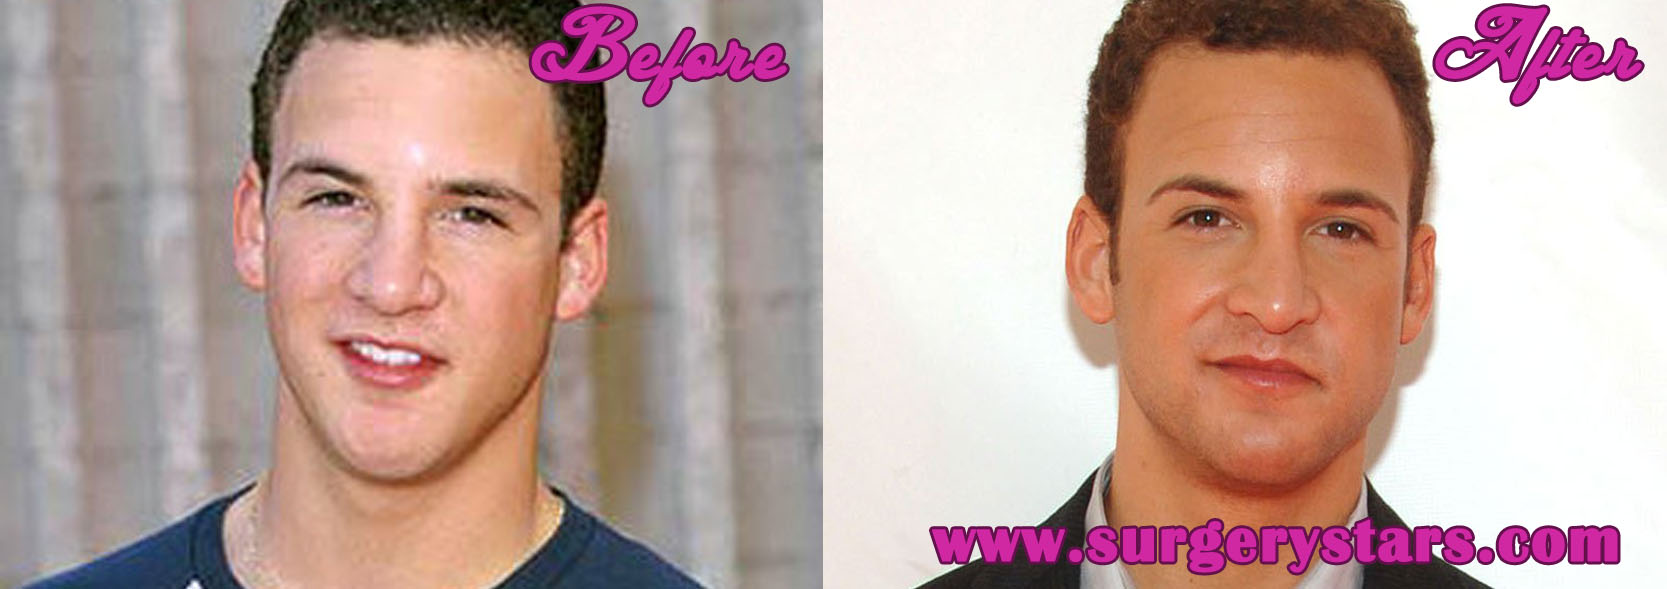 Ben Savage Nose Job – Before and After Pictures